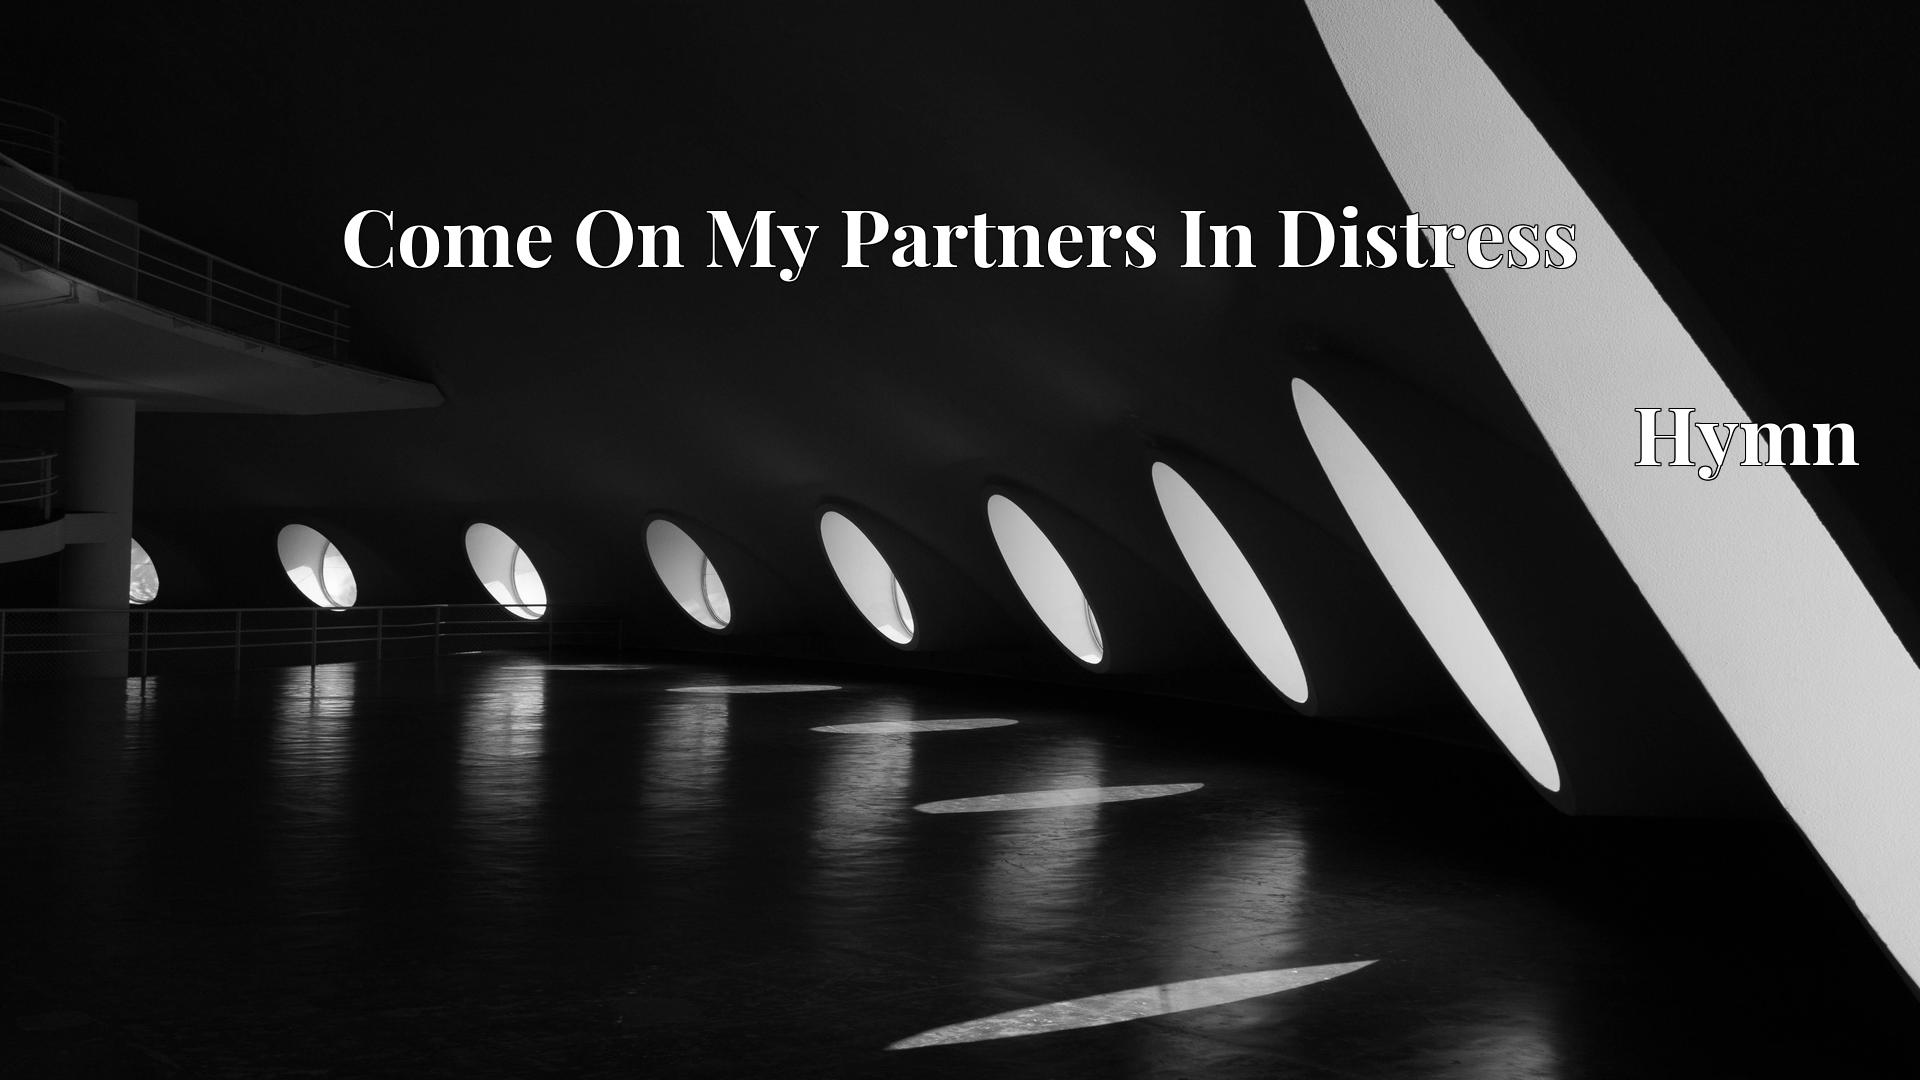 Come On My Partners In Distress Hymn Lyric